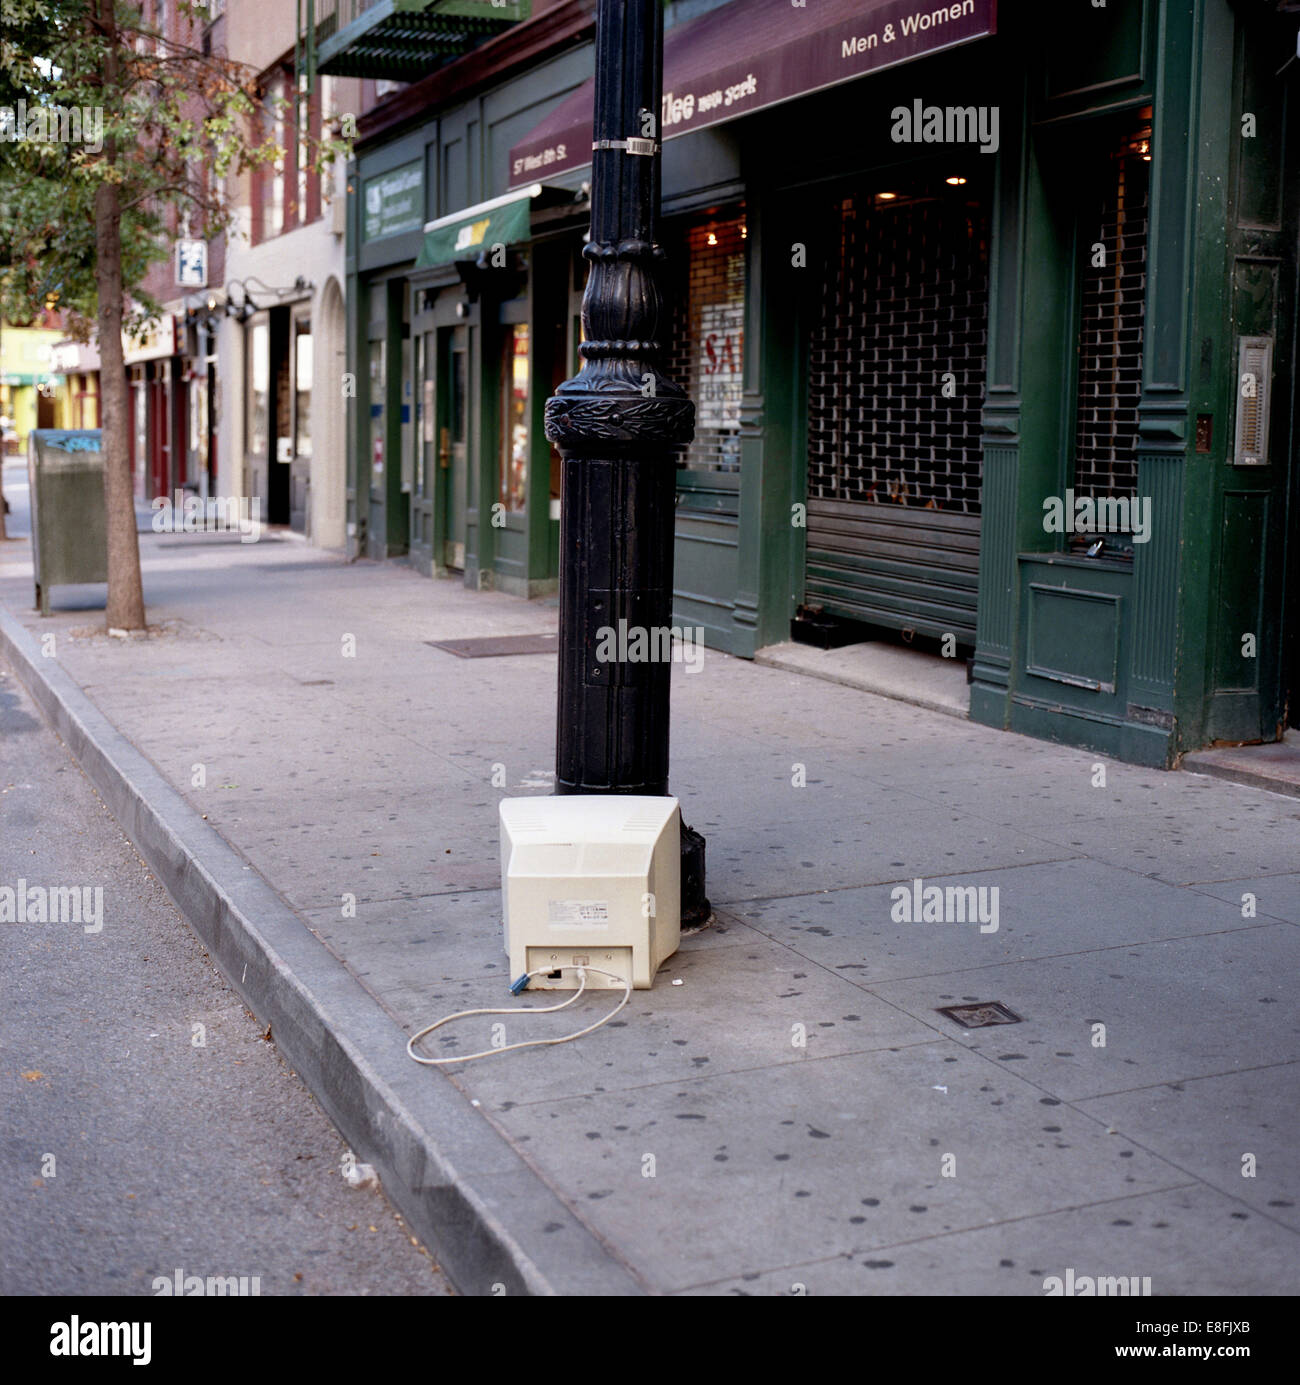 USA, New York State, New York City, Old monitor left on street Stock Photo